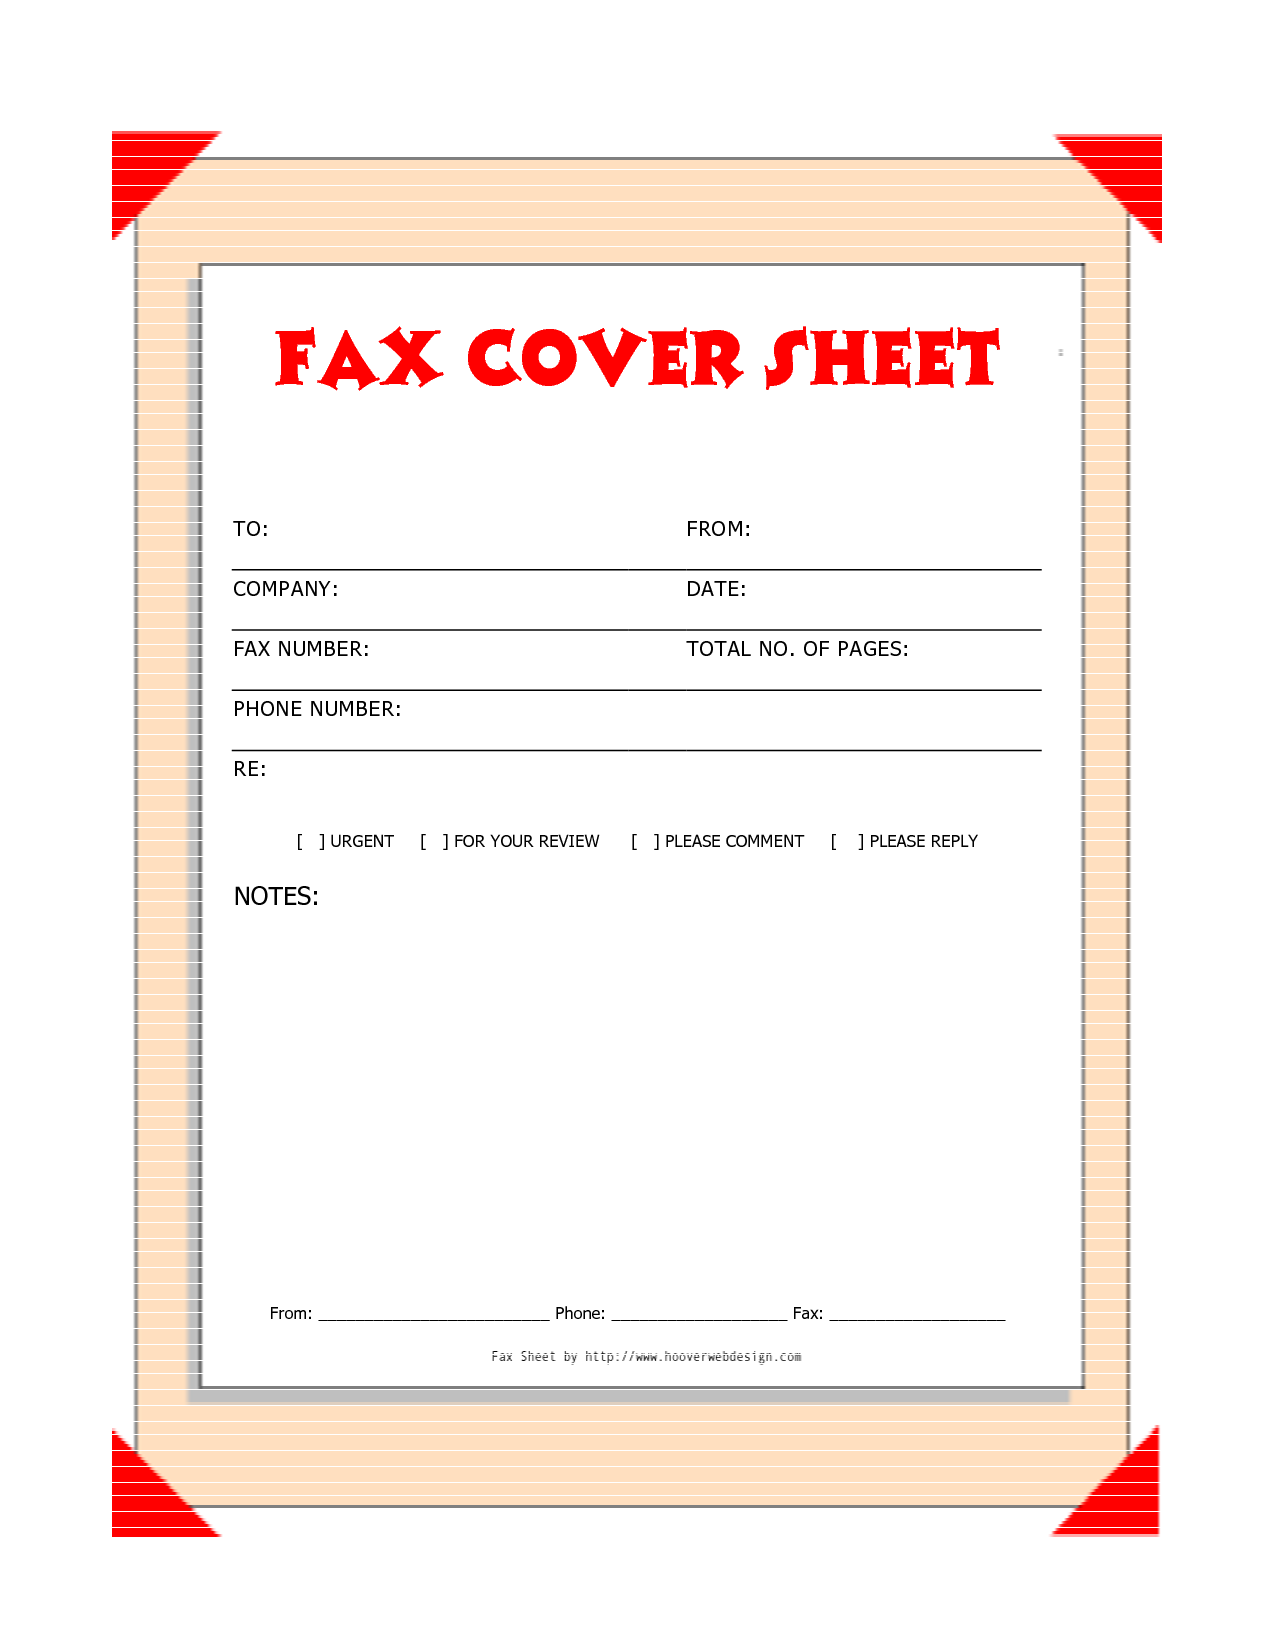 Free Downloads Fax Covers Sheets | Free Printable Fax Cover Sheet Template  Red   Download As  Fax Cover Sheet Download